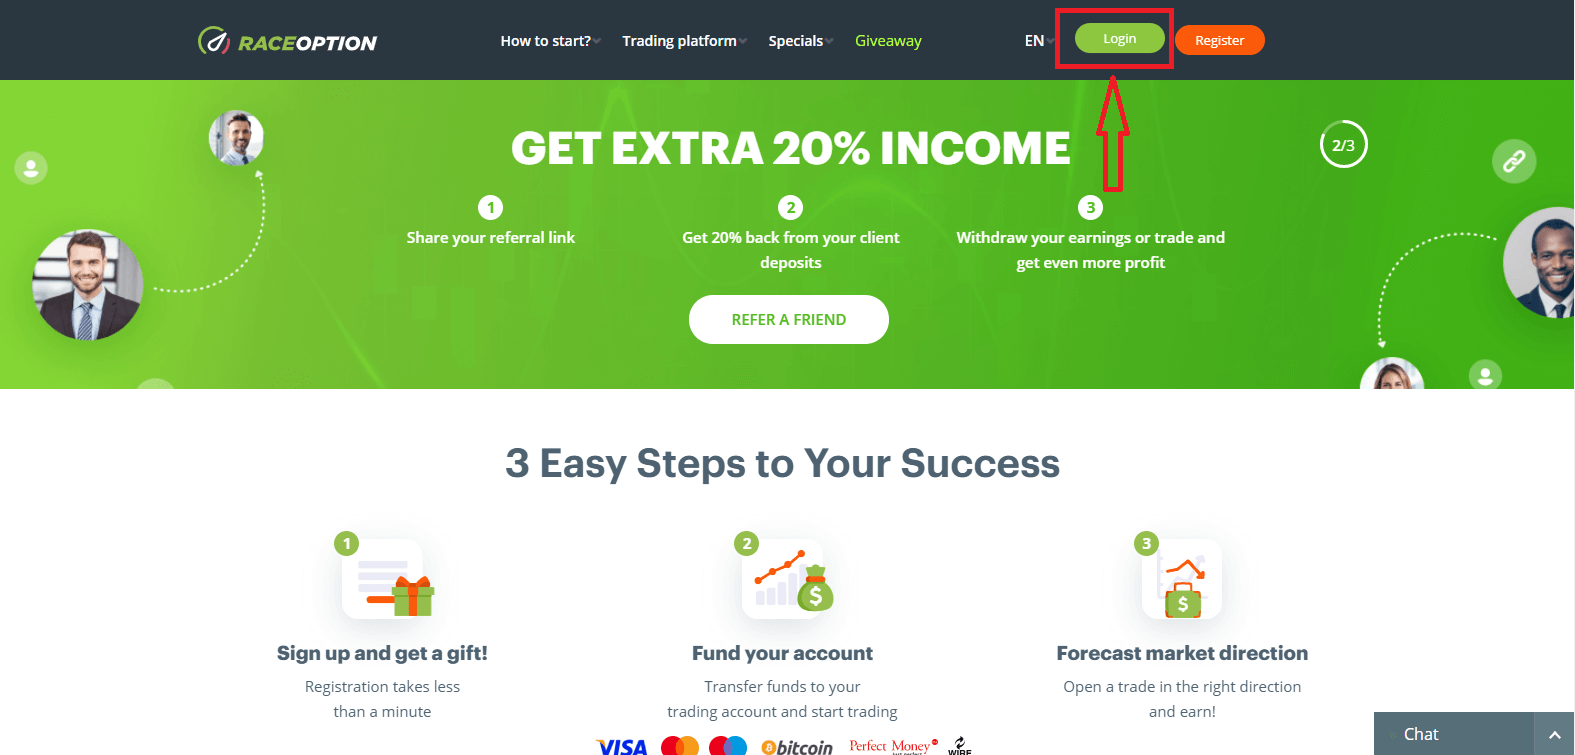 How to Login and Deposit Money in Raceoption